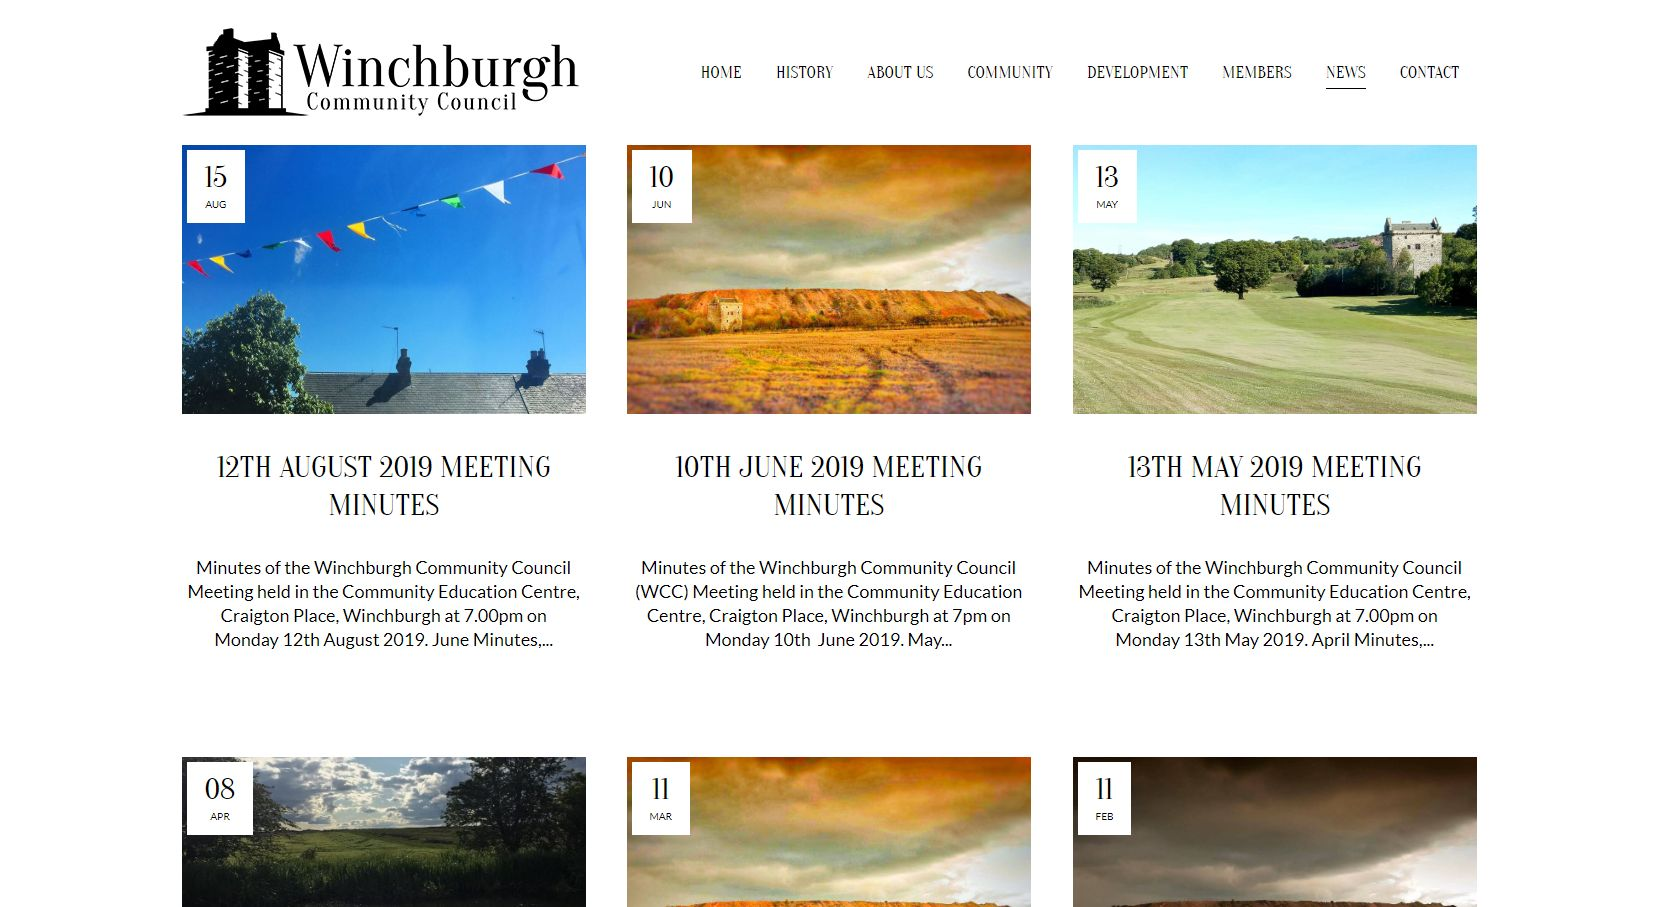 Winchburgh Community Council Development Blog